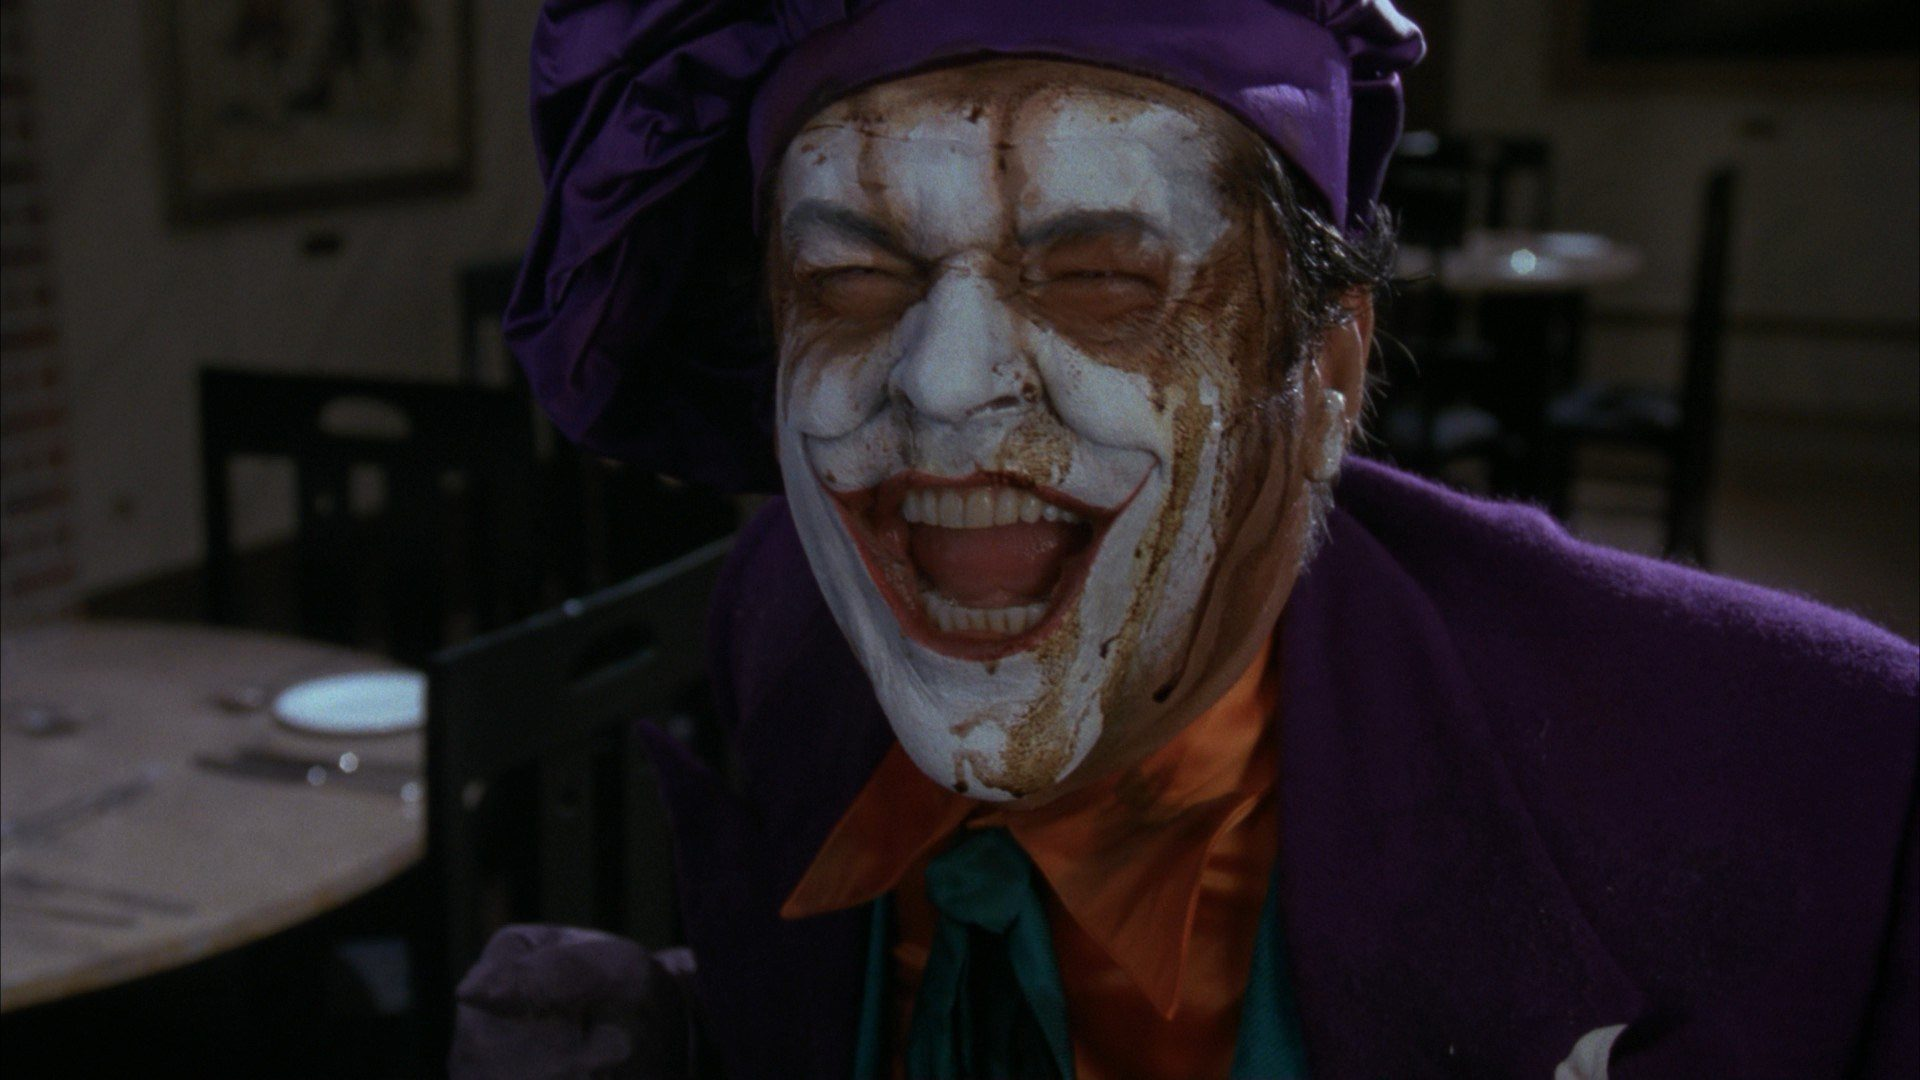 Batman' 1989: A Look Back at Jack Nicholson's Joker - mxdwn Movies